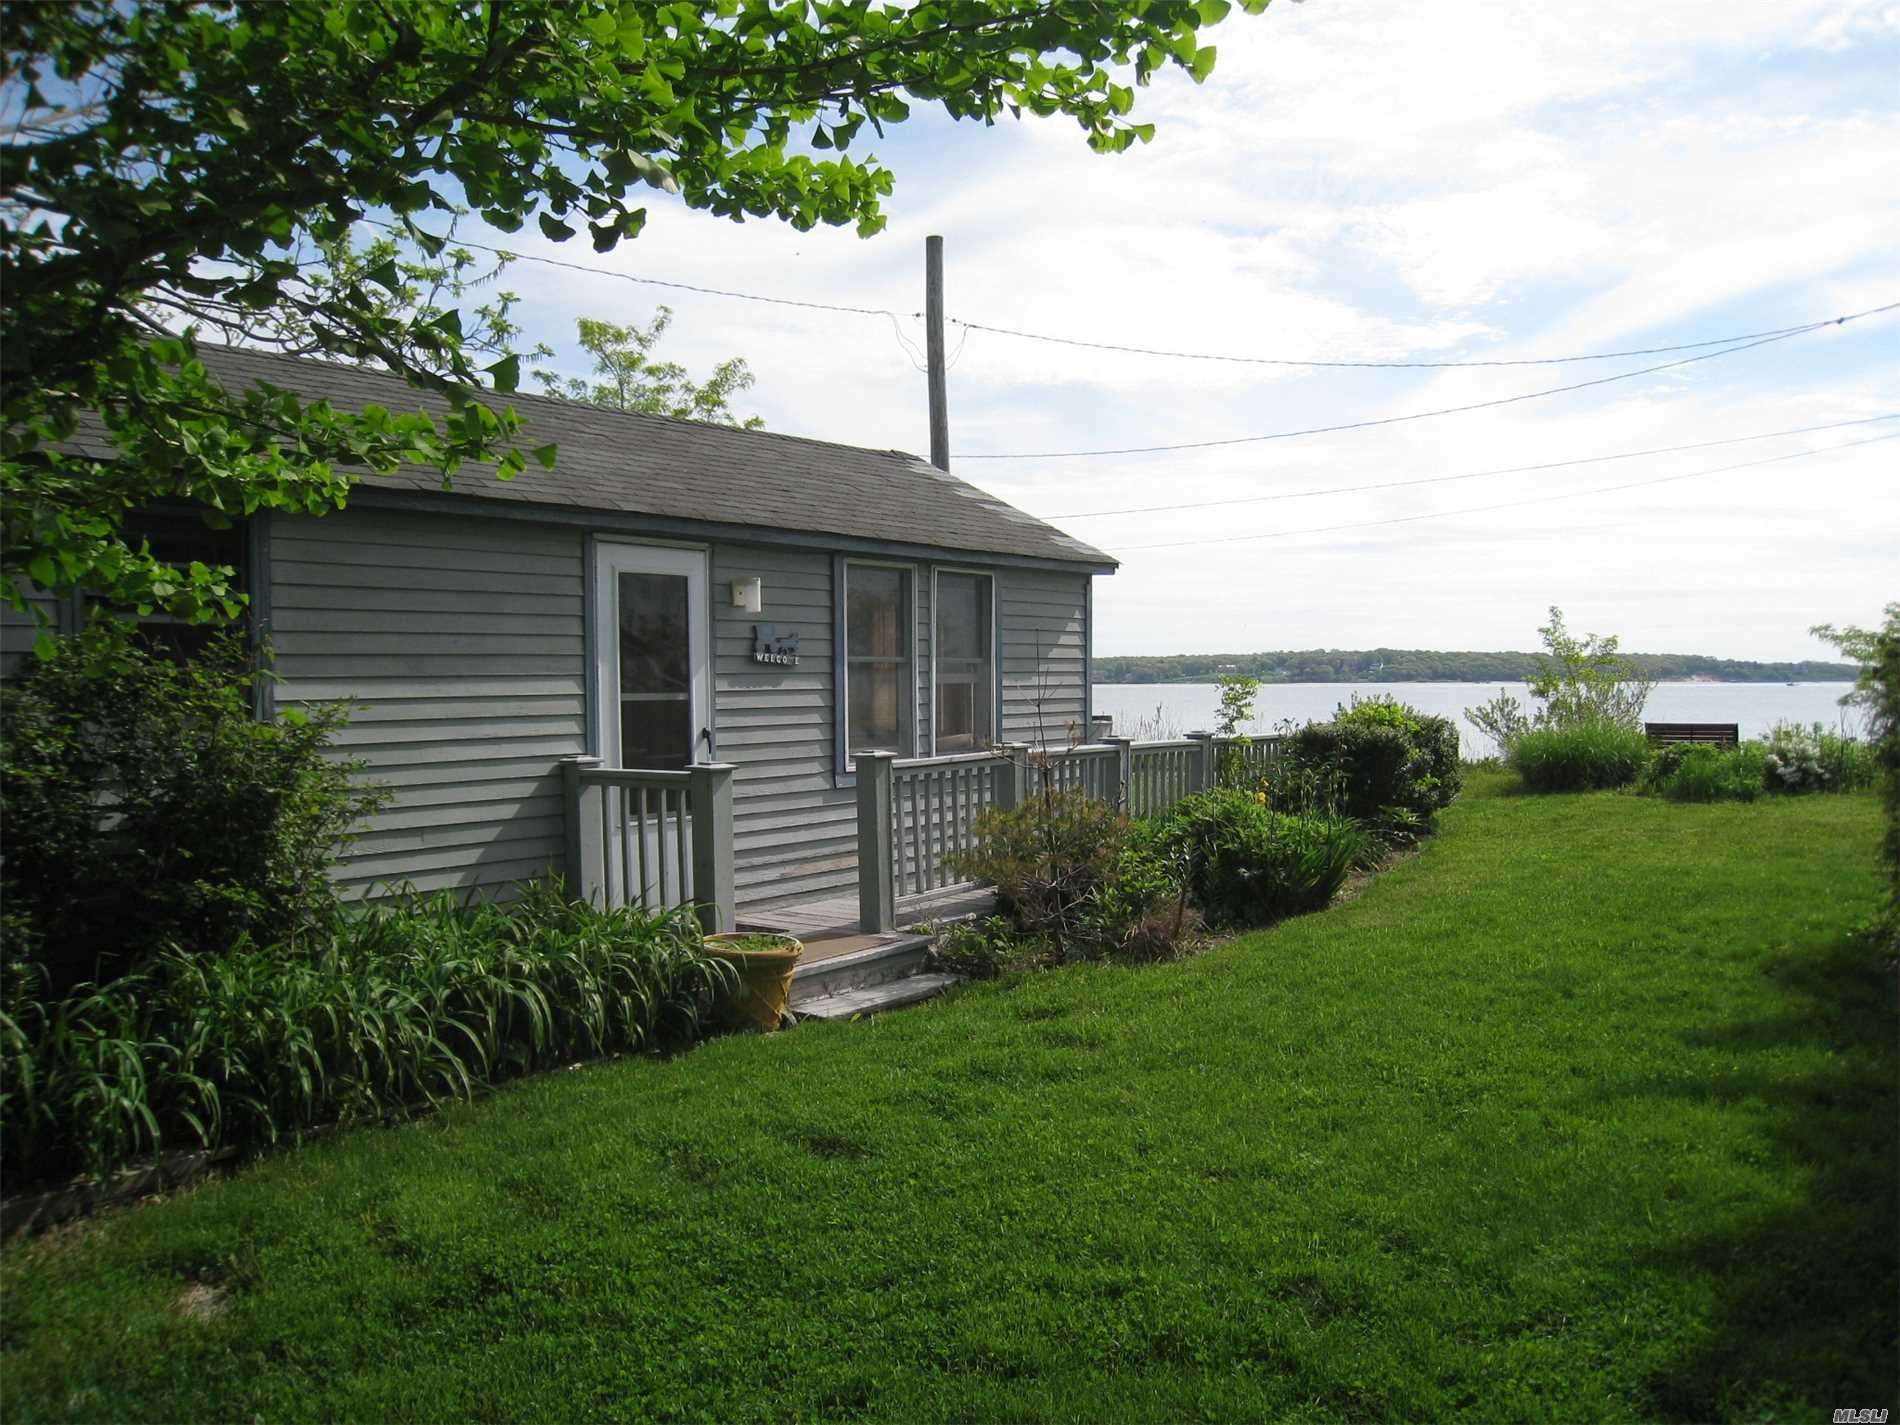 Charming Beachfront Cottage In The Bayfront Hamlet Of New Suffolk. Enjoy The Simplicity Of Summer: The Views, The Deck And Garden, And Your Sandy Bay Beach. This One-Bedroom Full Season Rental Is Easy On The Budget Too; Utilities Included.